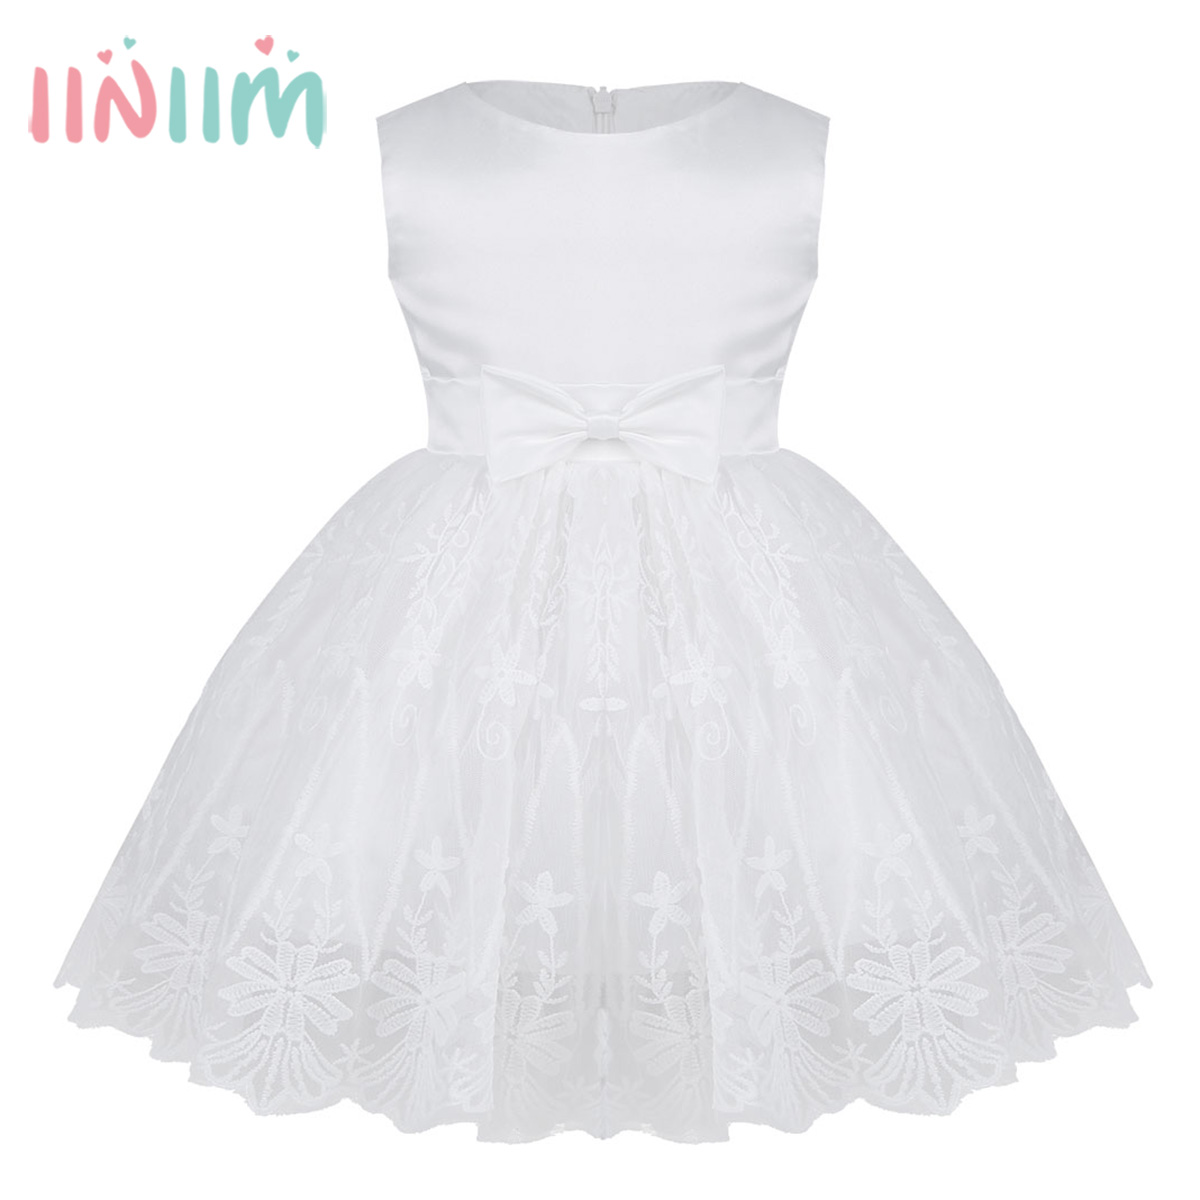 Infant Baby Girls Sleeveless Bowknot Floral Embroidered Girl Dress Baptism  Pageant Wedding Bridesmaid Birthday Party Tutu 20c770ffe374